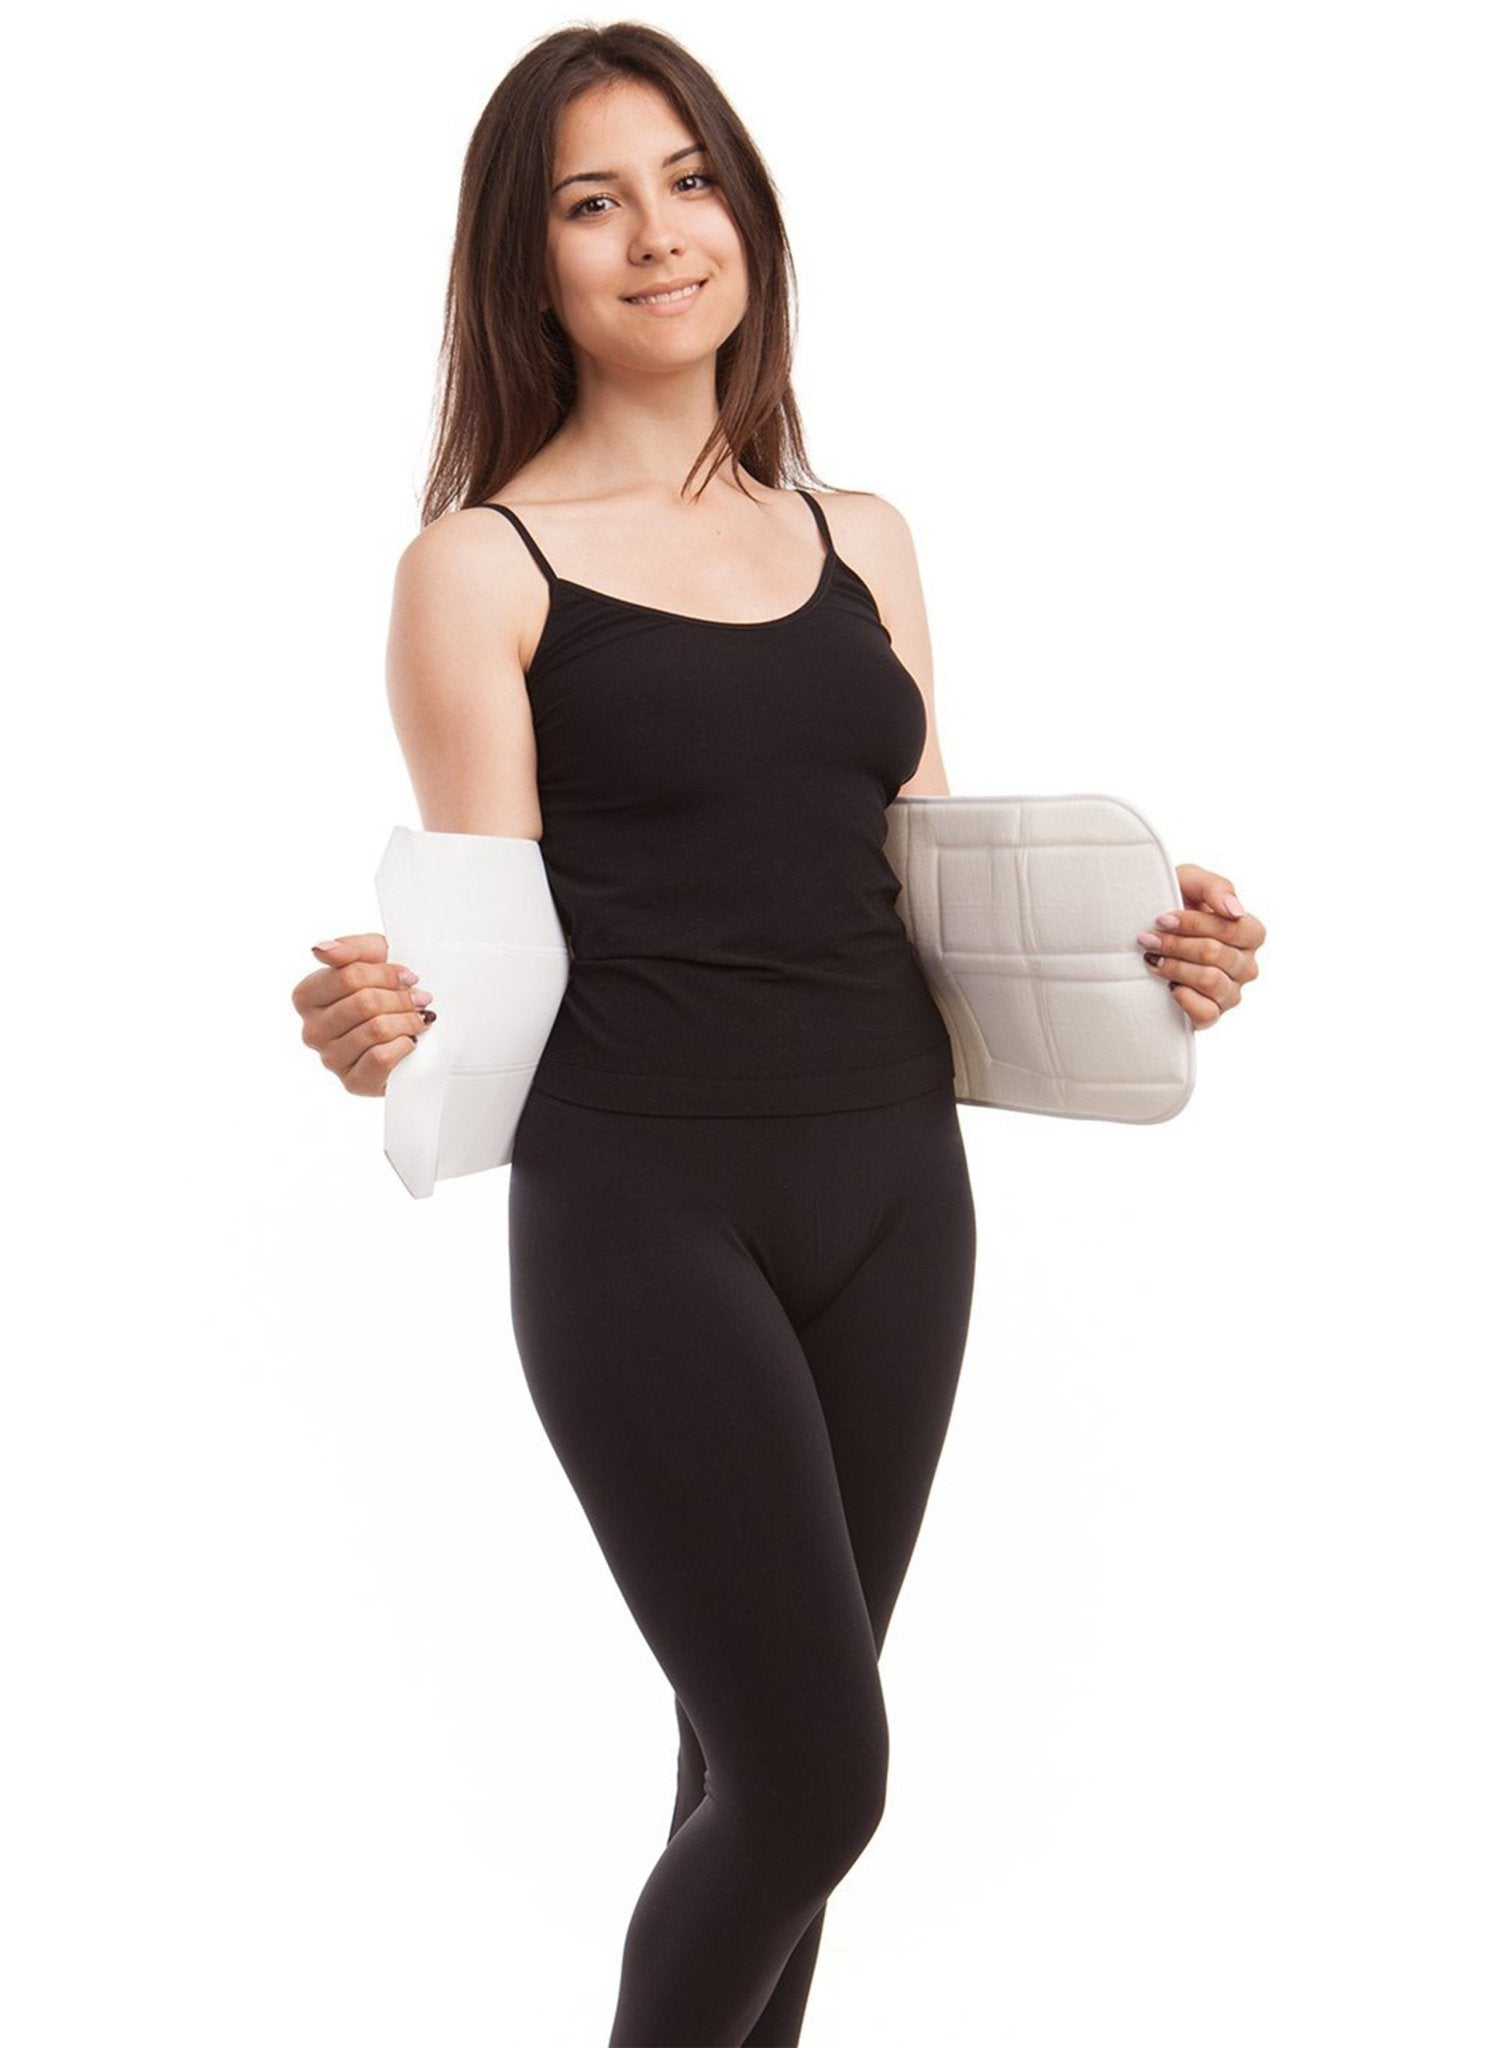 Elastic Abdominal Support Binder - White - Mums and Bumps